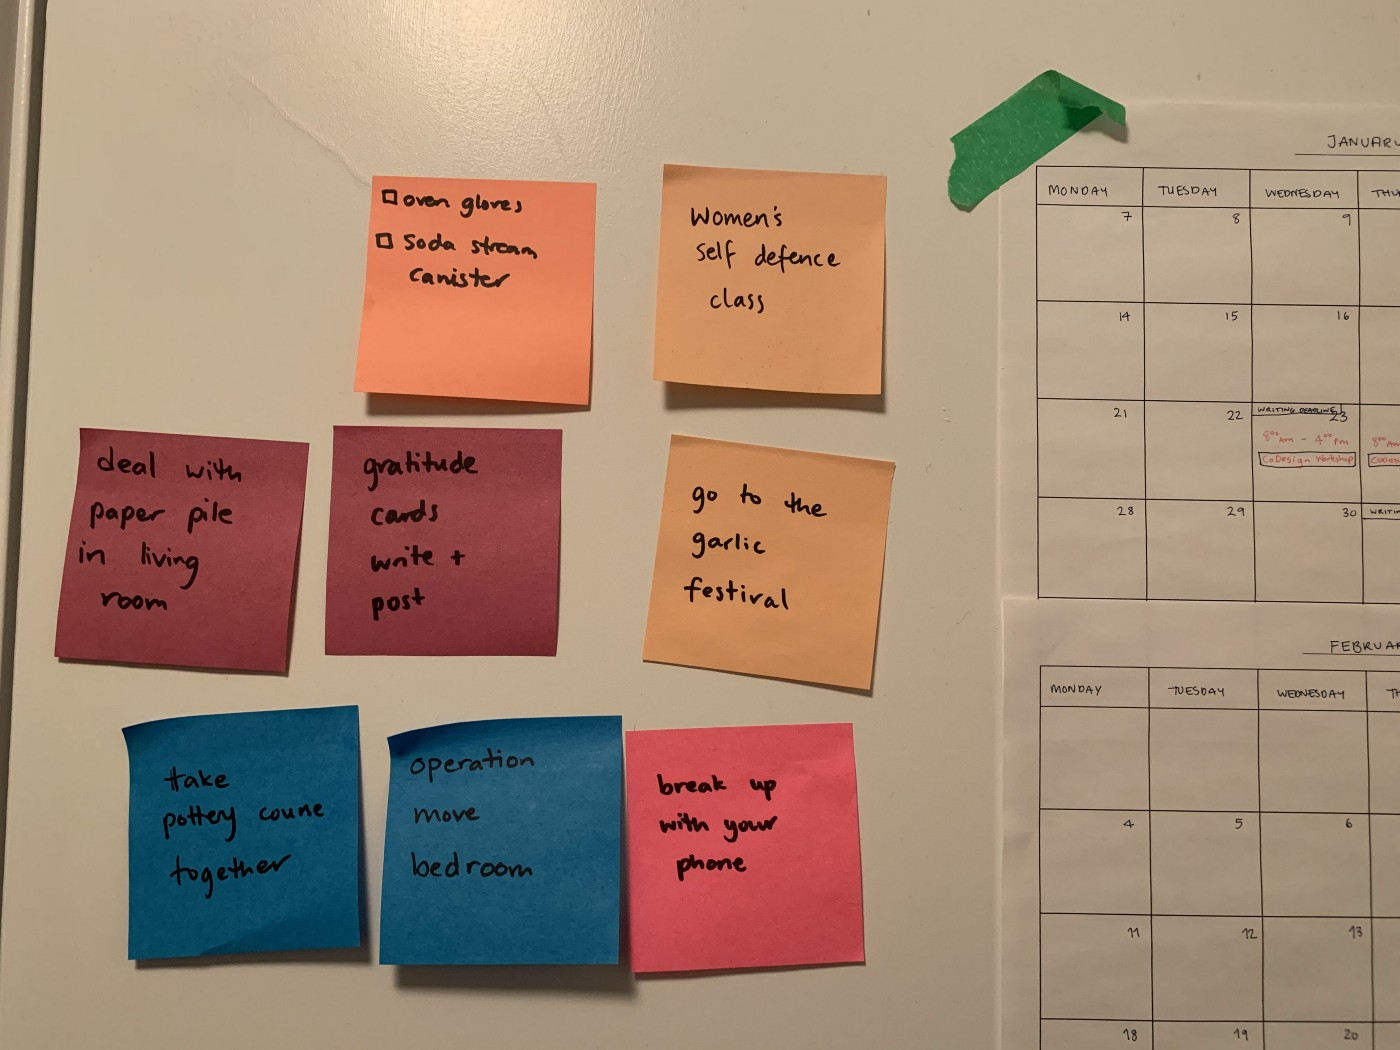 a cluster of post it notes with tasks on them beside a calendar on a wall